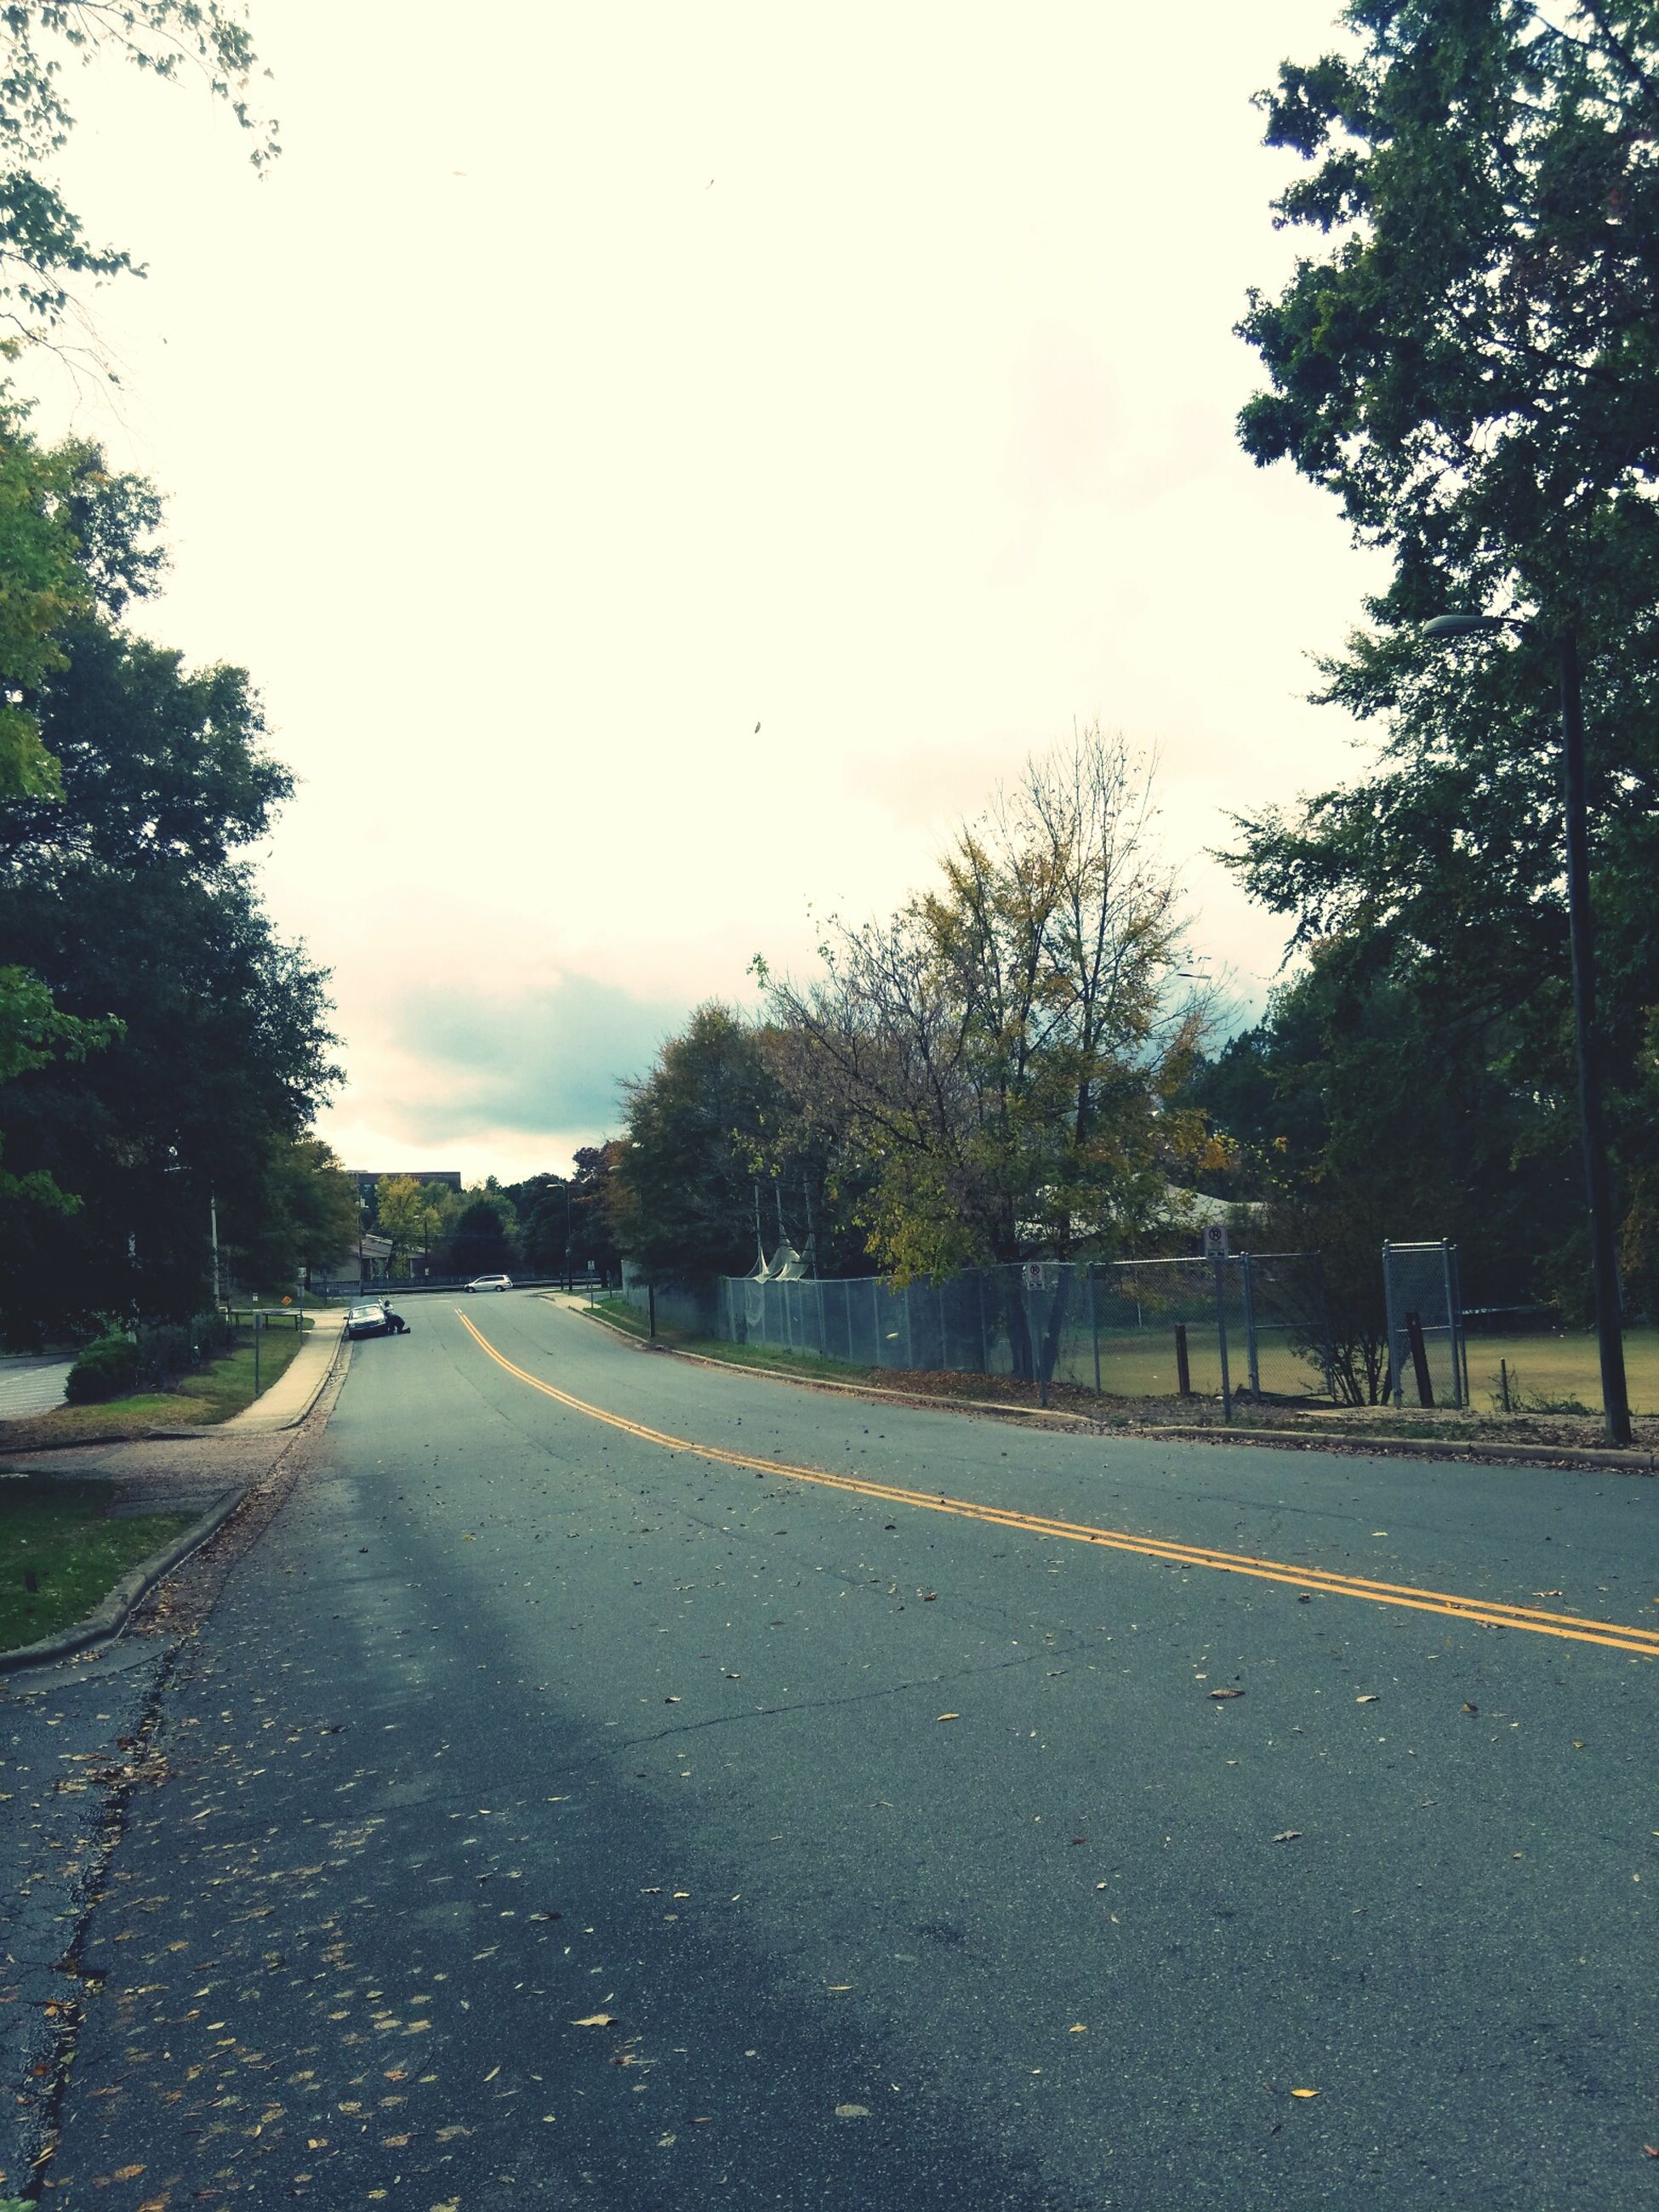 the way forward, tree, transportation, road, diminishing perspective, vanishing point, road marking, sky, street, asphalt, empty road, country road, empty, treelined, car, long, nature, outdoors, tranquility, growth